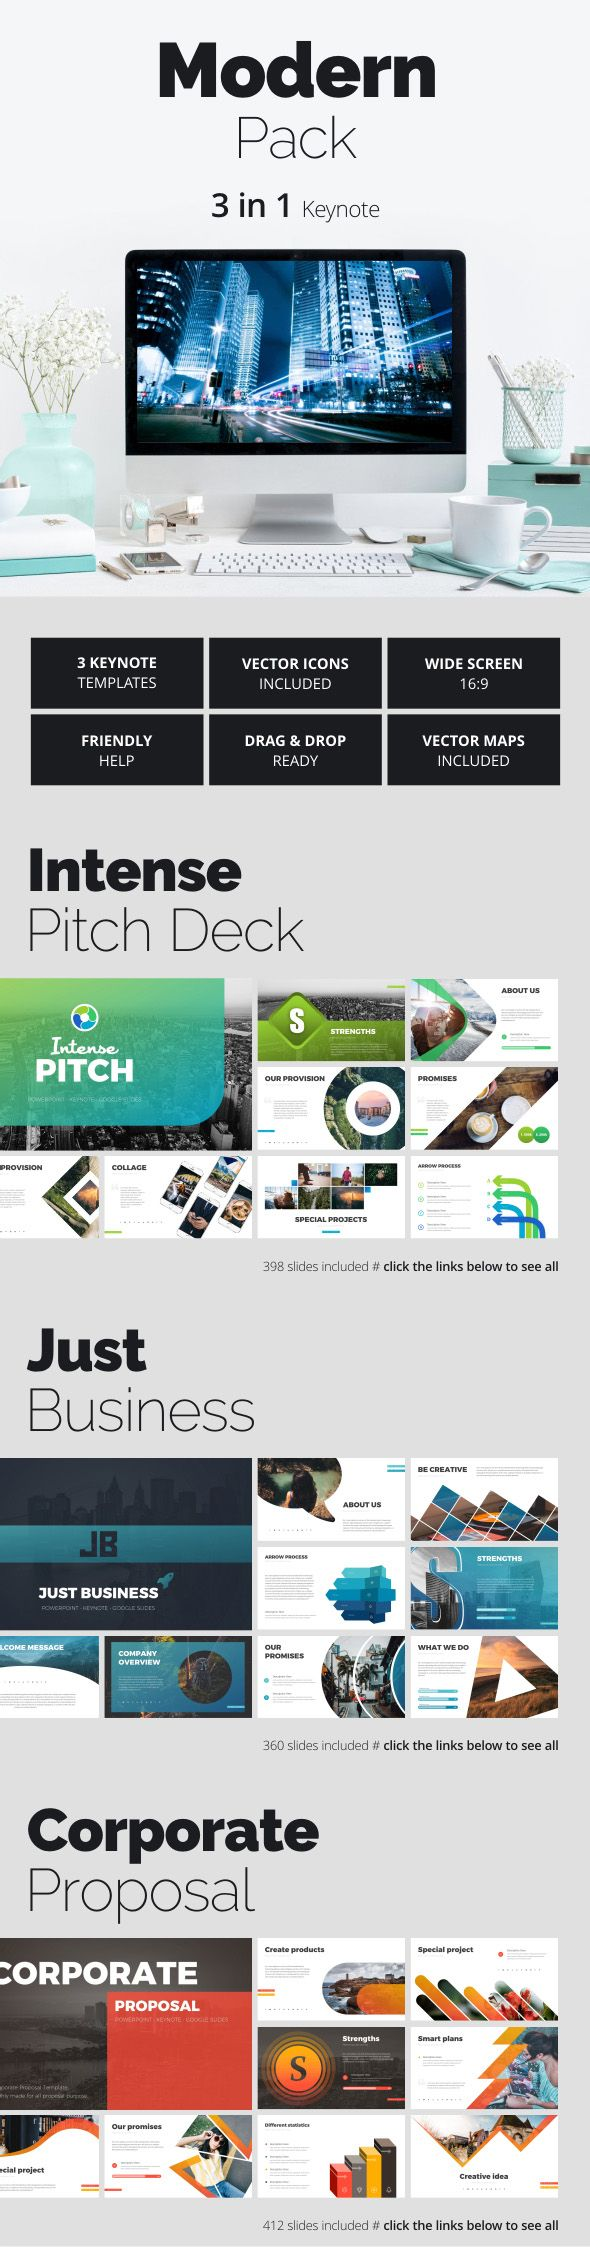 Modern Pack   Keynote, Template and Presentation templates